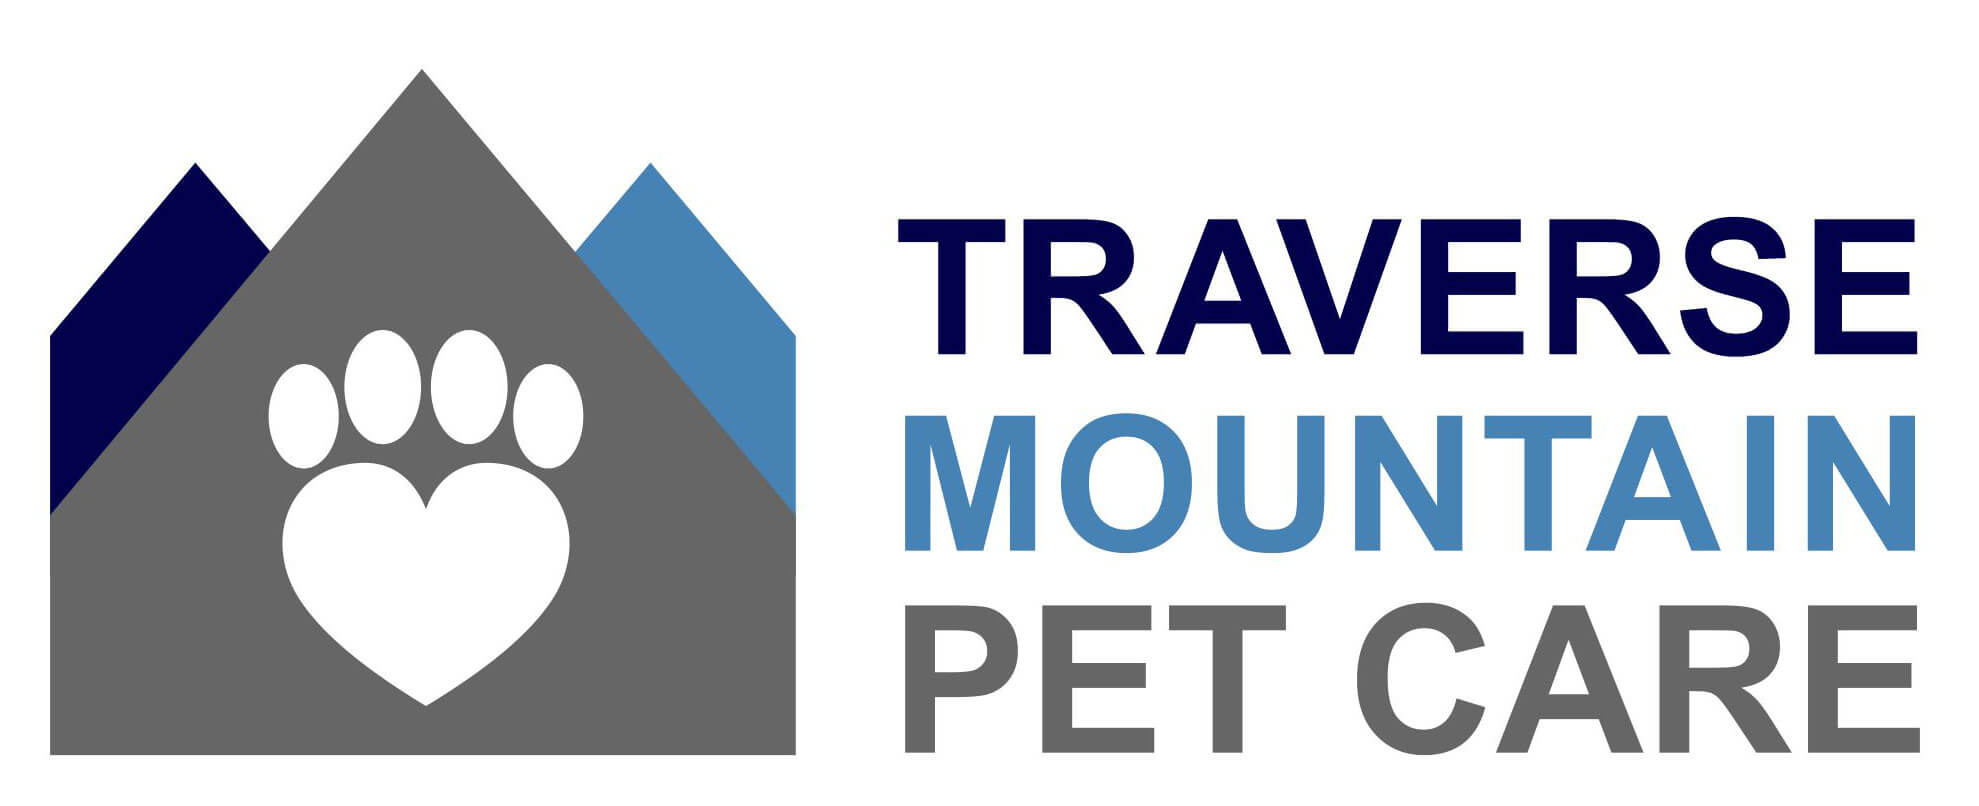 Traverse Mountain Pet Care